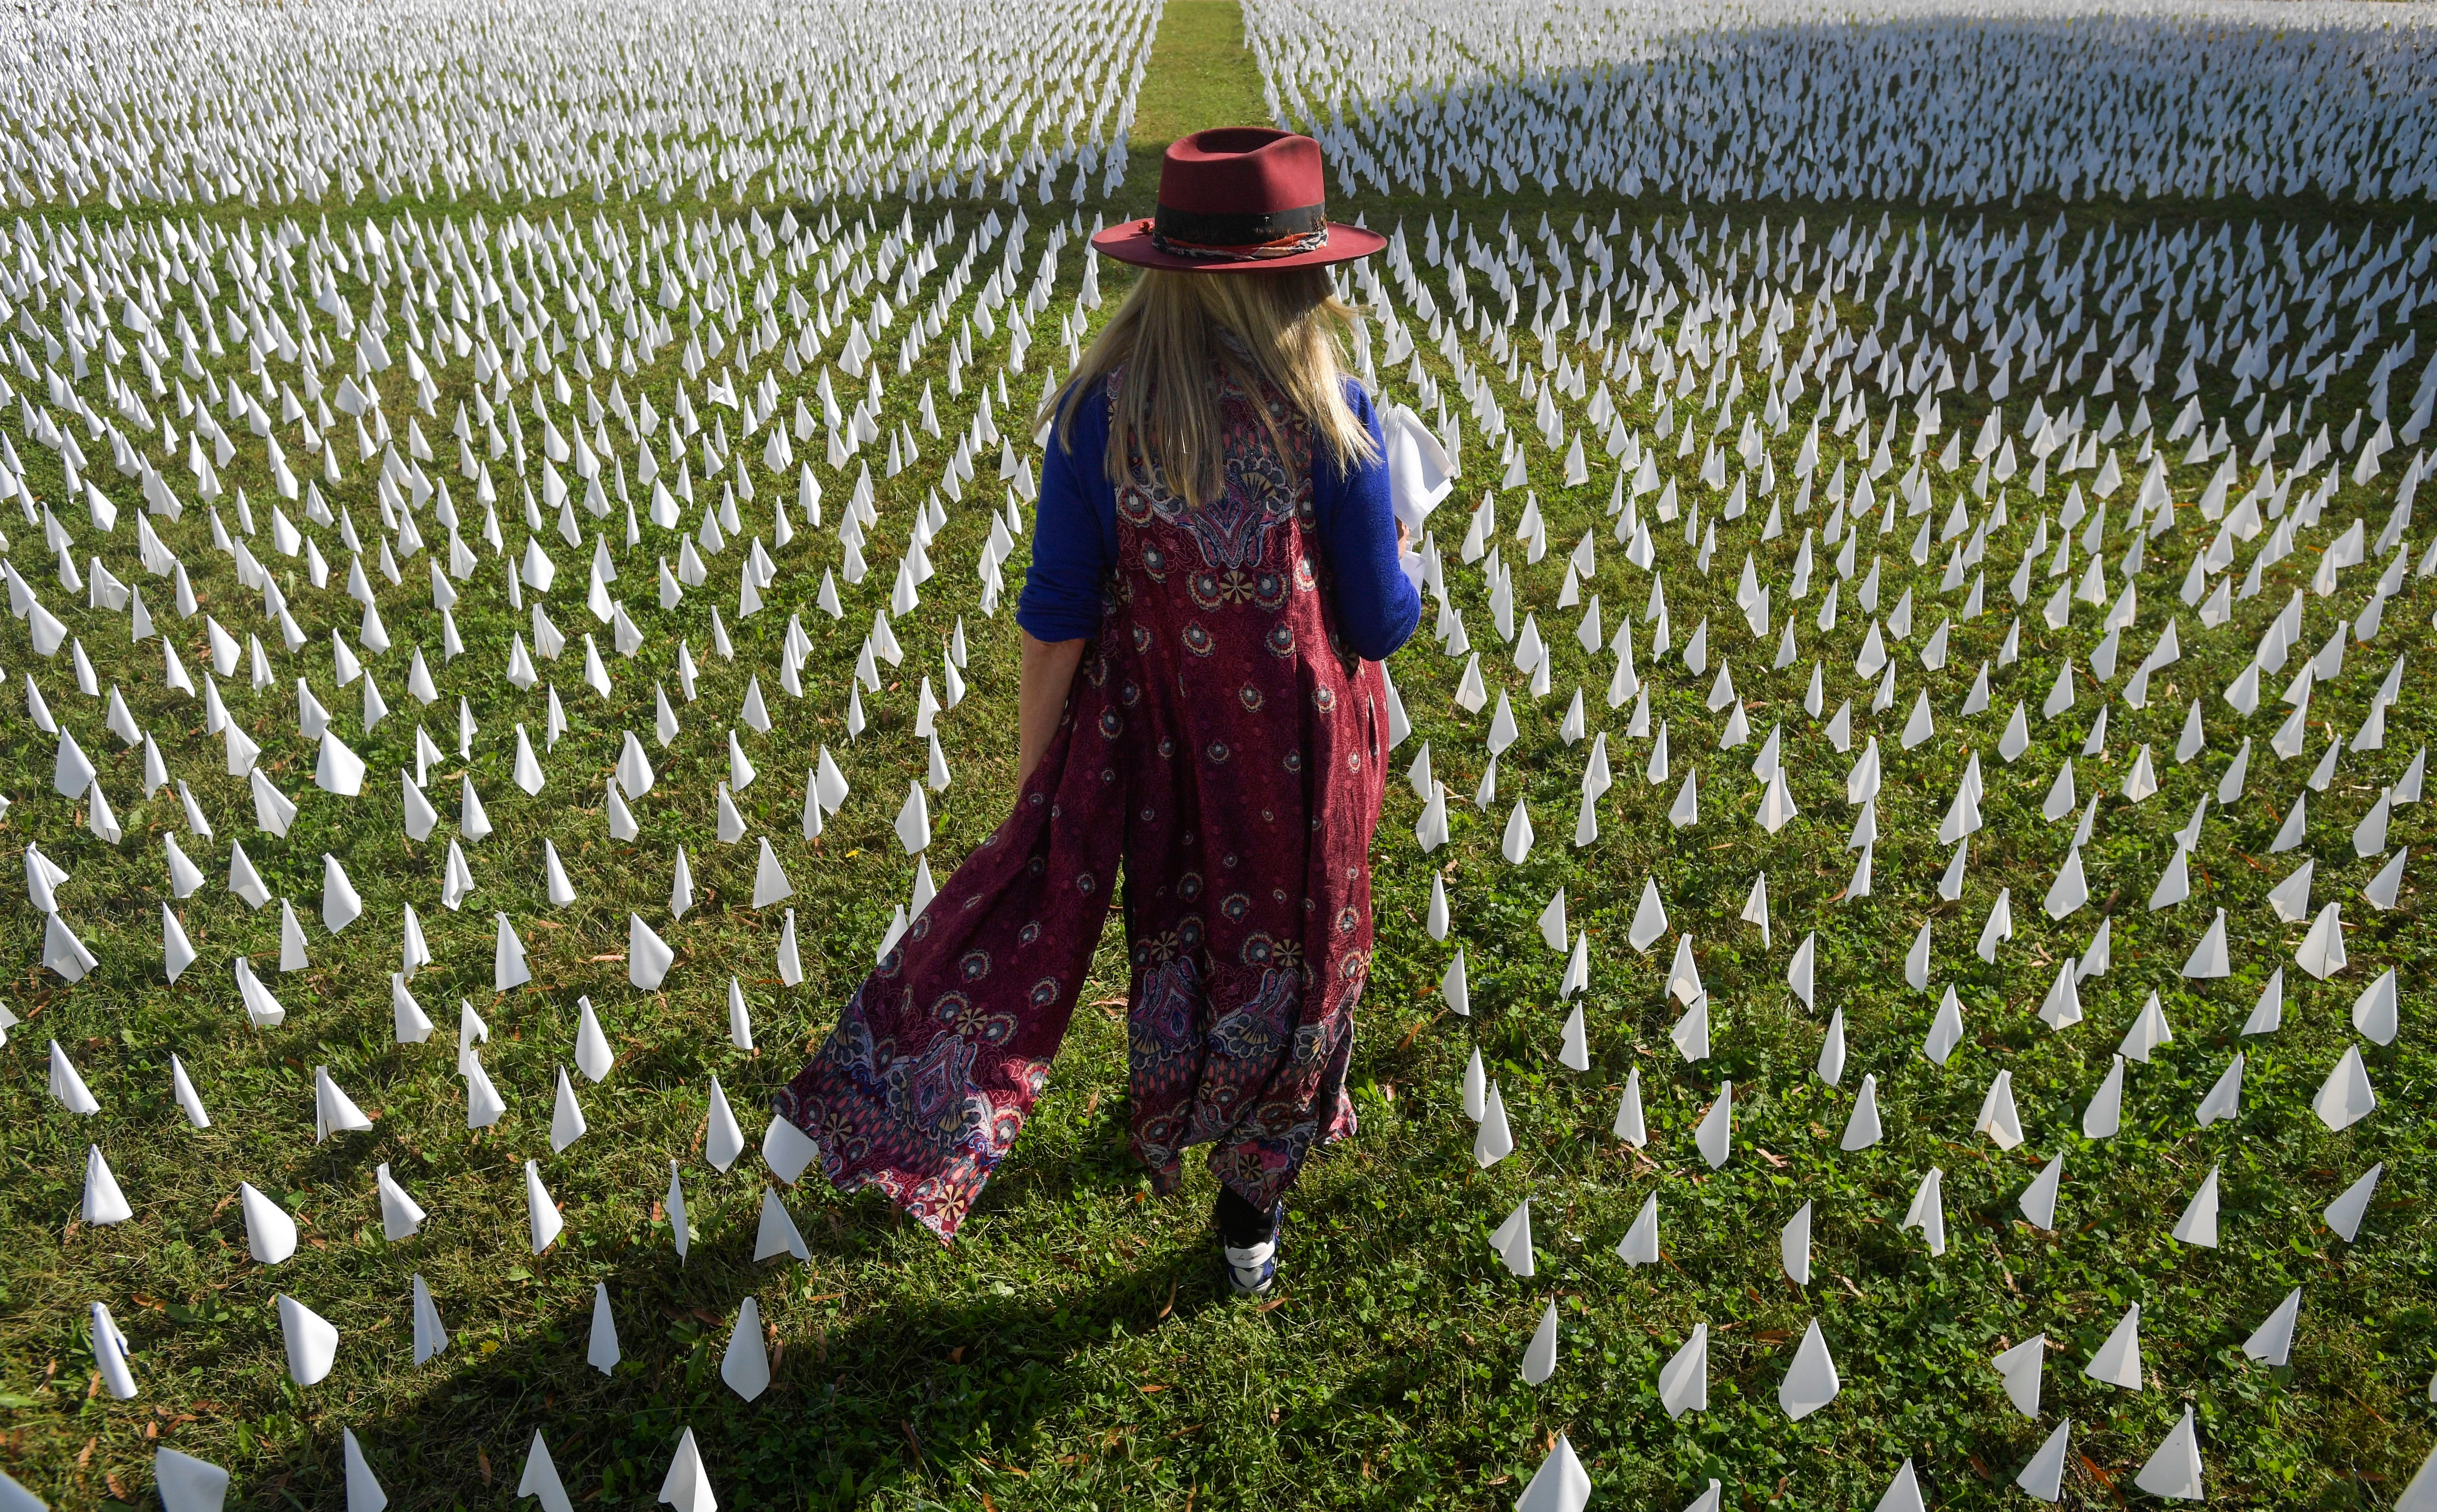 """Artist Suzanne Firstenberg walks through """"IN AMERICA: How Could This Happen,"""" an installation on the DC Armory Parade Ground in Washington, D.C., on Oct. 23, 2020. Each flag represents a life lost to COVID-19 in the United States. At the time of the installation, the number of flags totaled just under 225,000."""